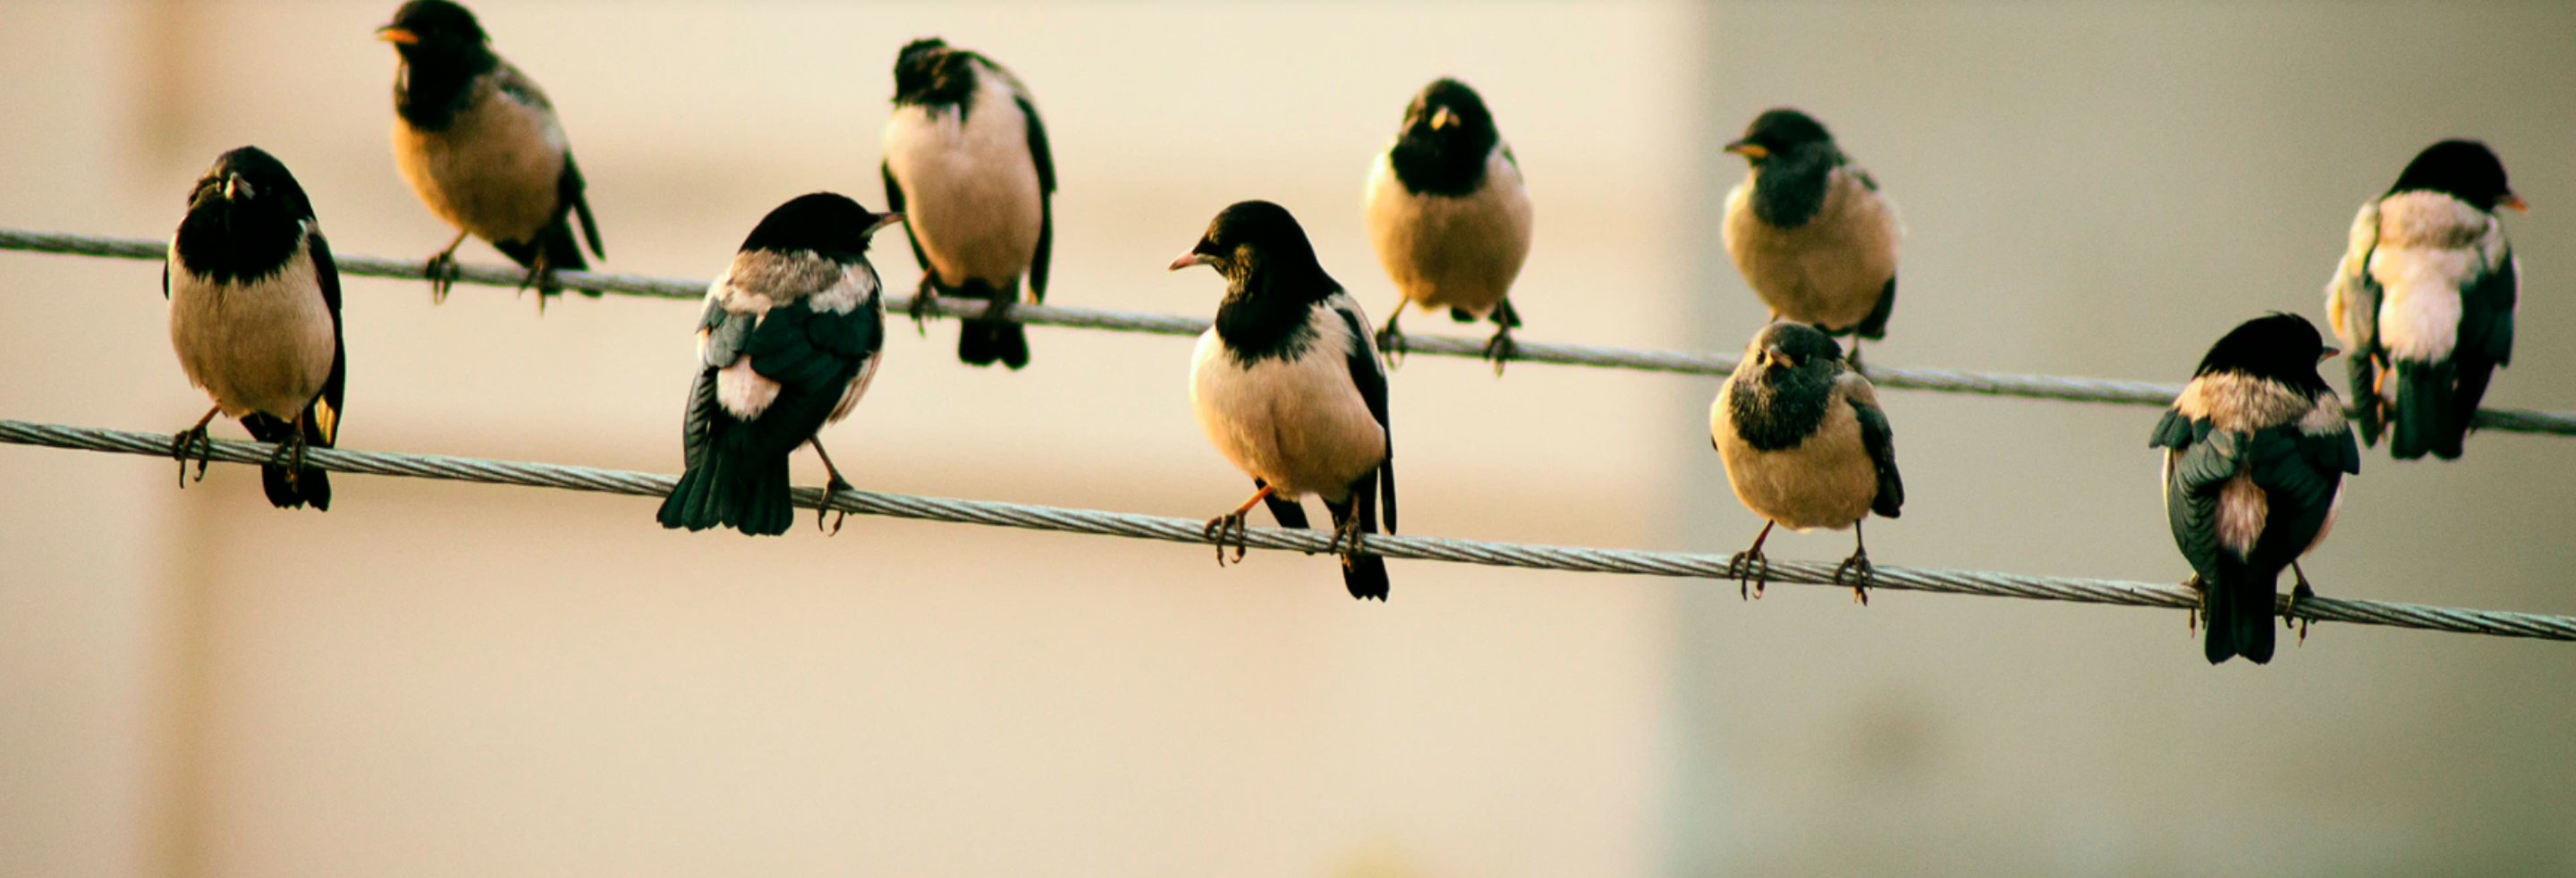 birds distanced on two wires